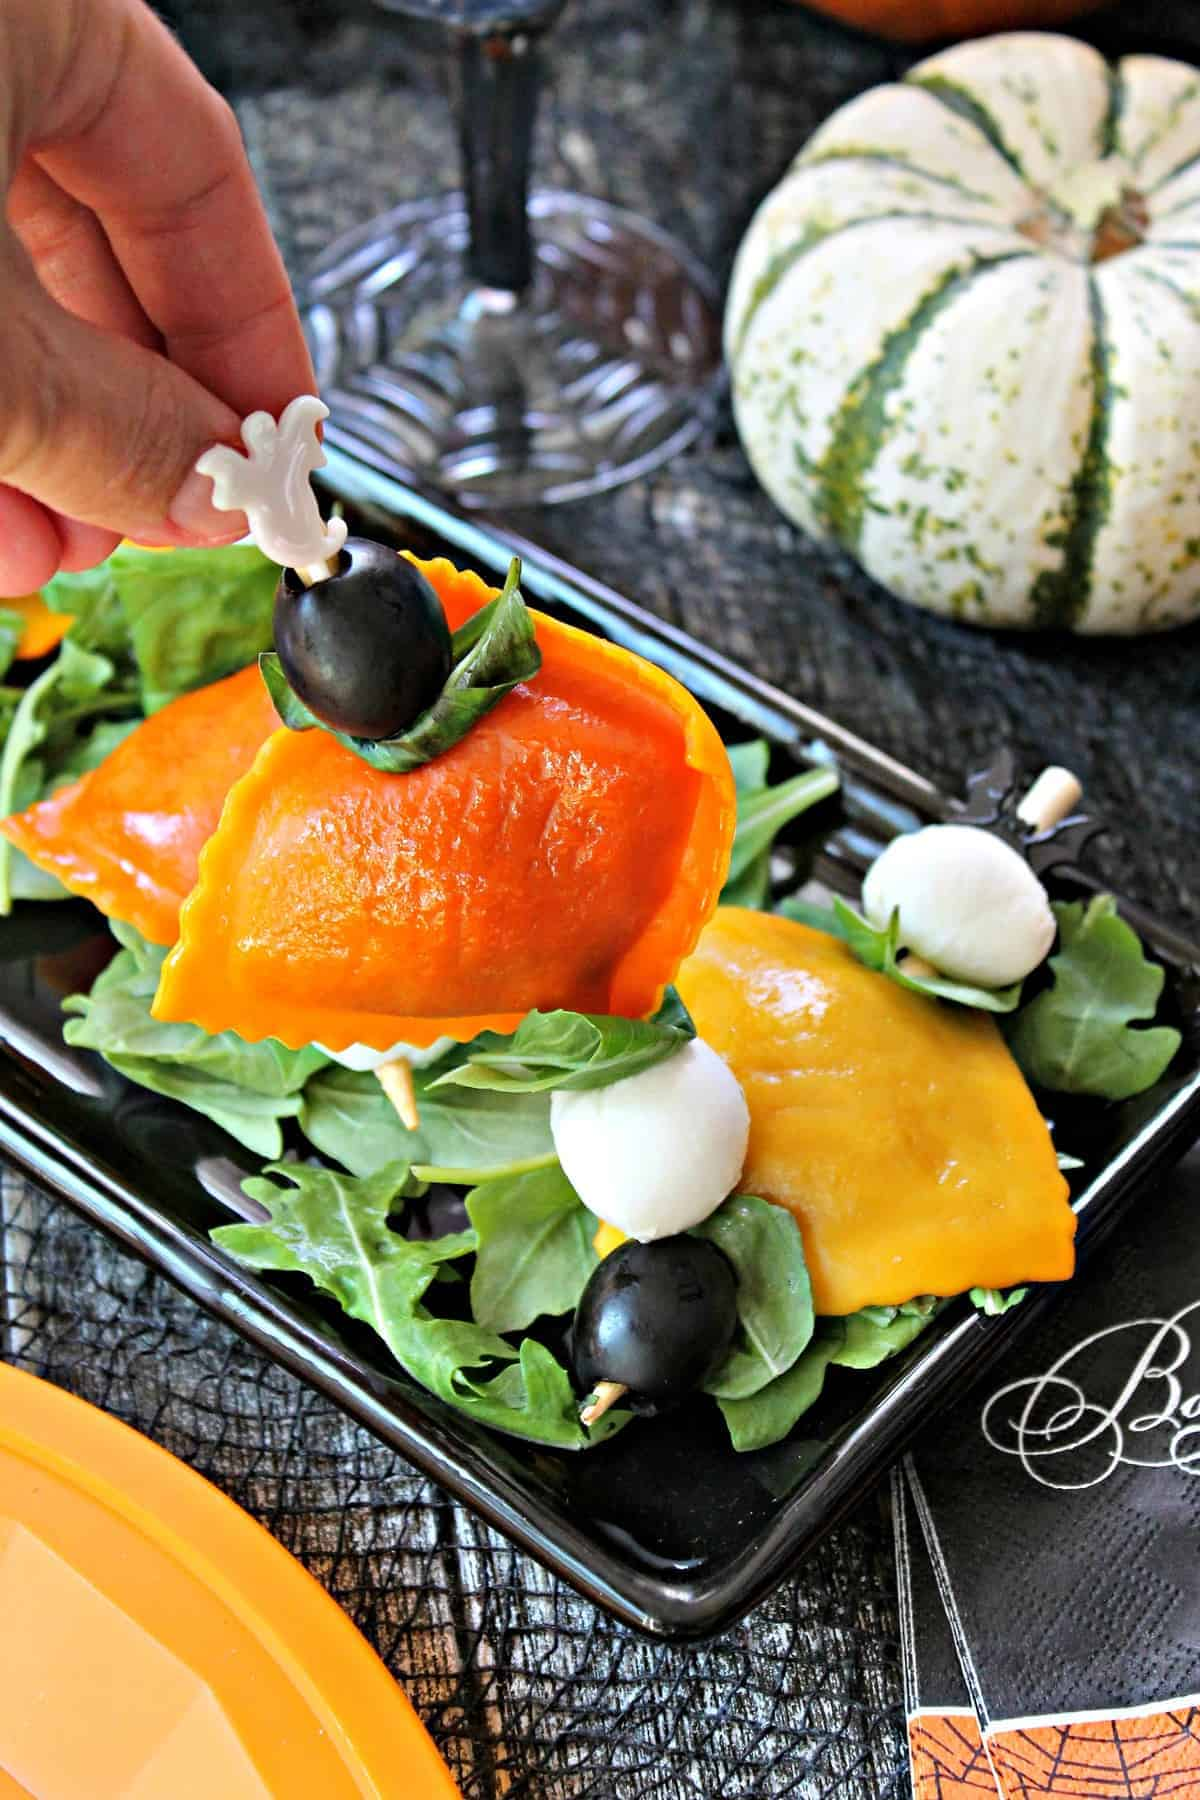 Orange and yellow pumpkin ravioli threaded onto bamboo skewers with mozzarella balls, black olives and fresh basil on a Halloween background.